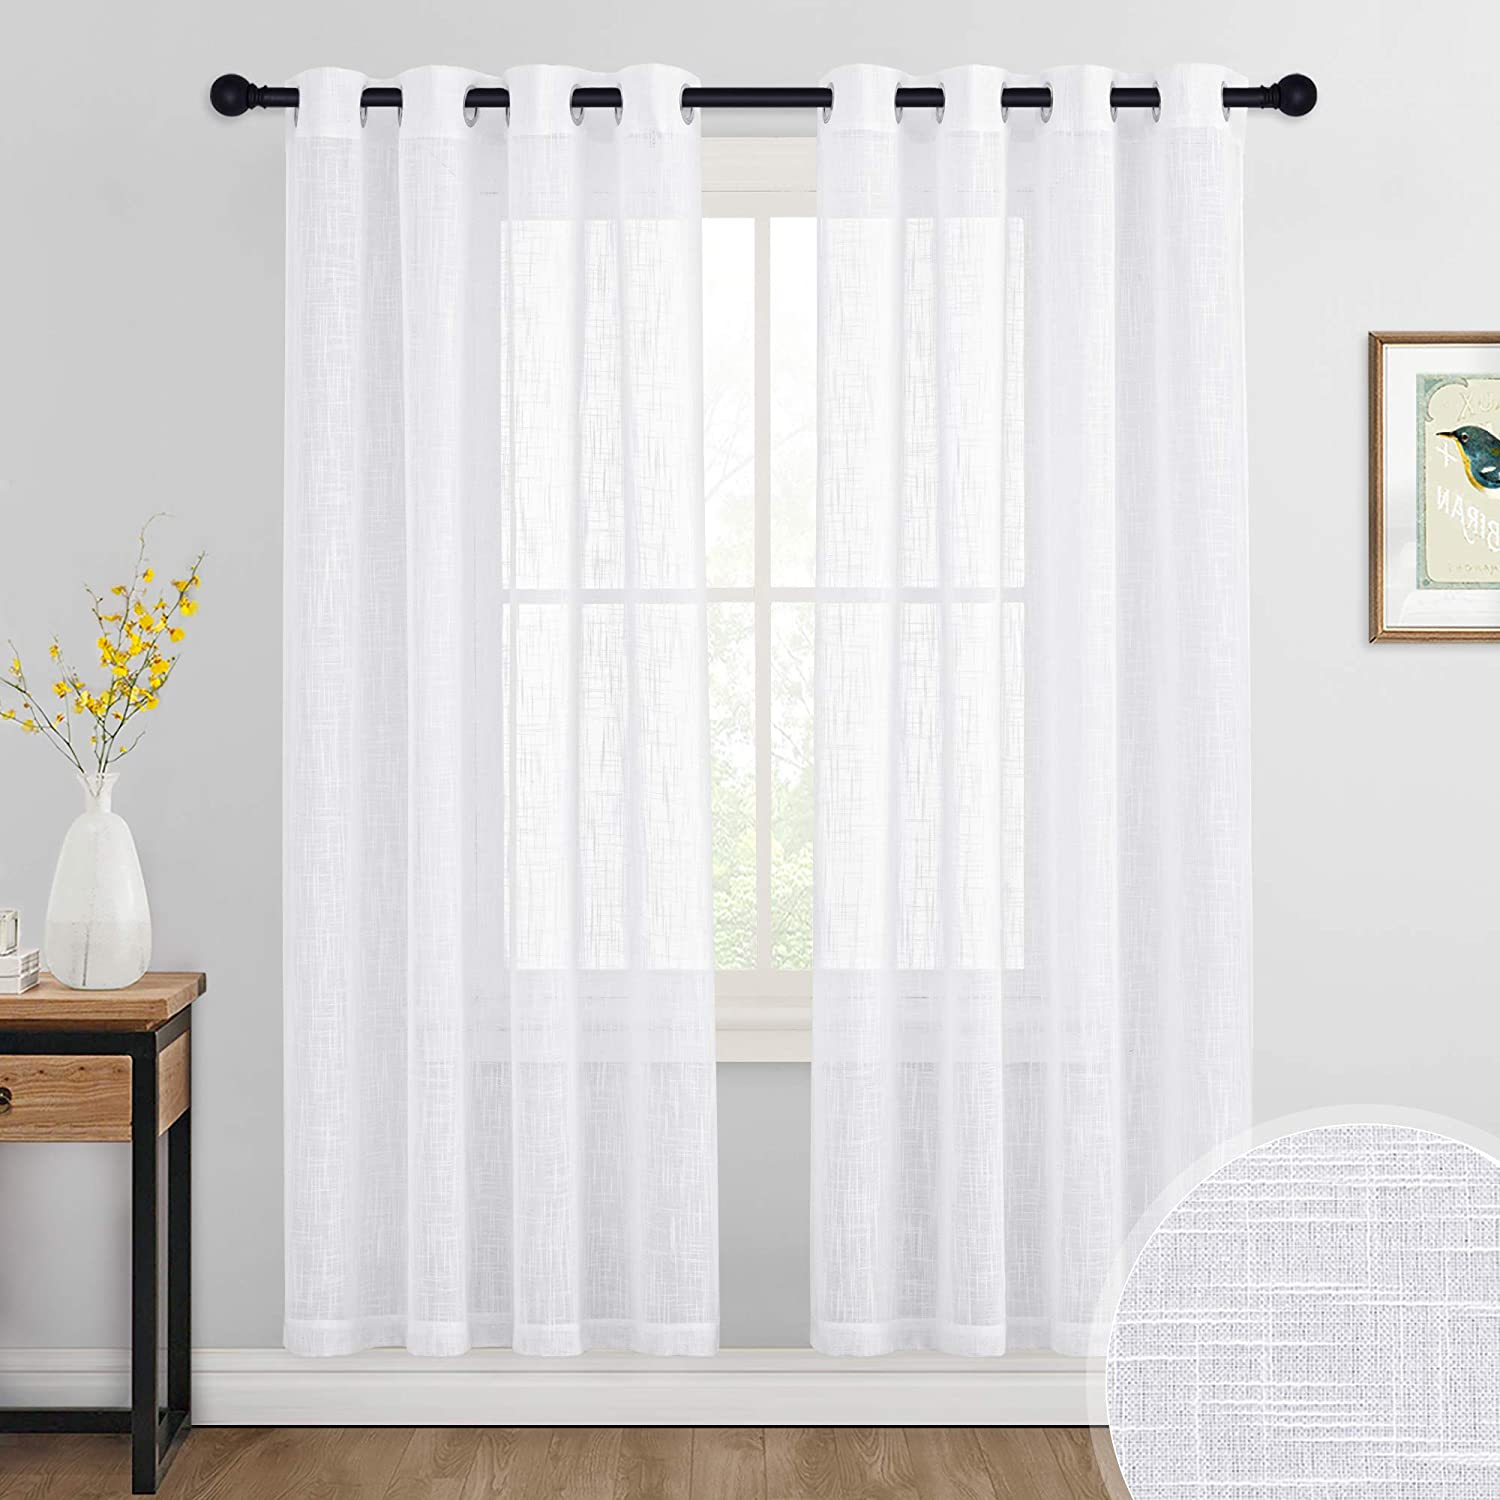 RYB HOME Sheer White Curtains - Grommet Semi-Sheer Curtains Privacy Linen Textured Sheer Drapes for Bedroom Living Room Dining Balcony, 52 inches Width x 72 inches Length, 1 Pair